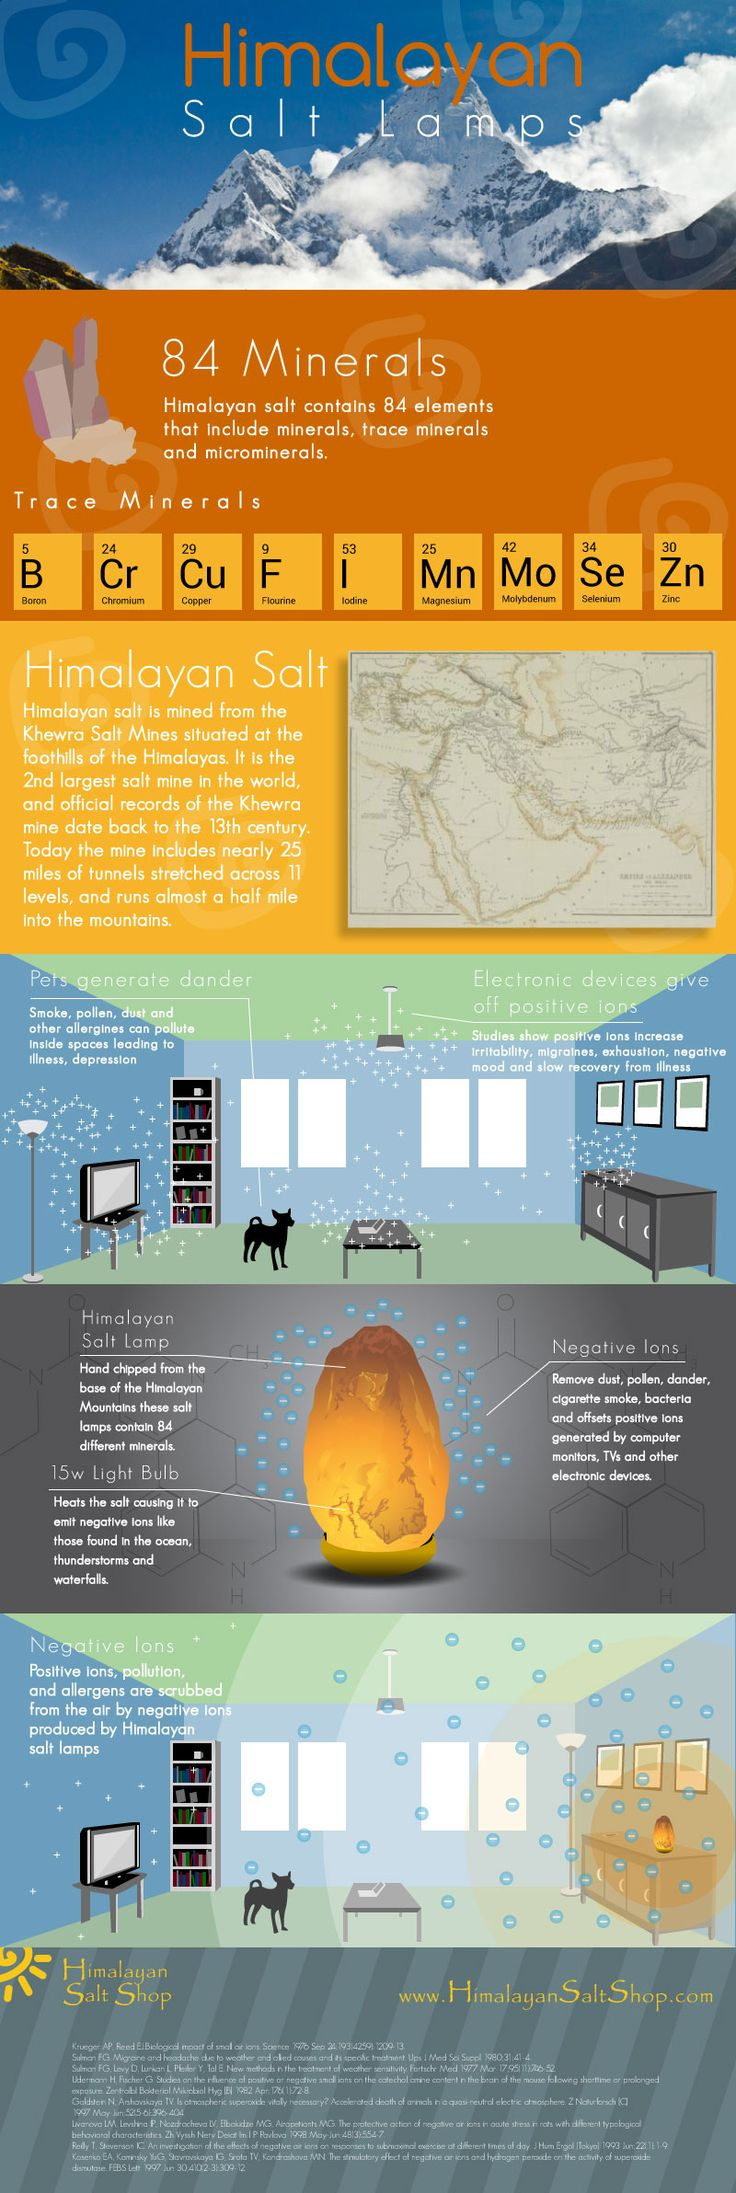 How Himalayan salt lamps work infographic